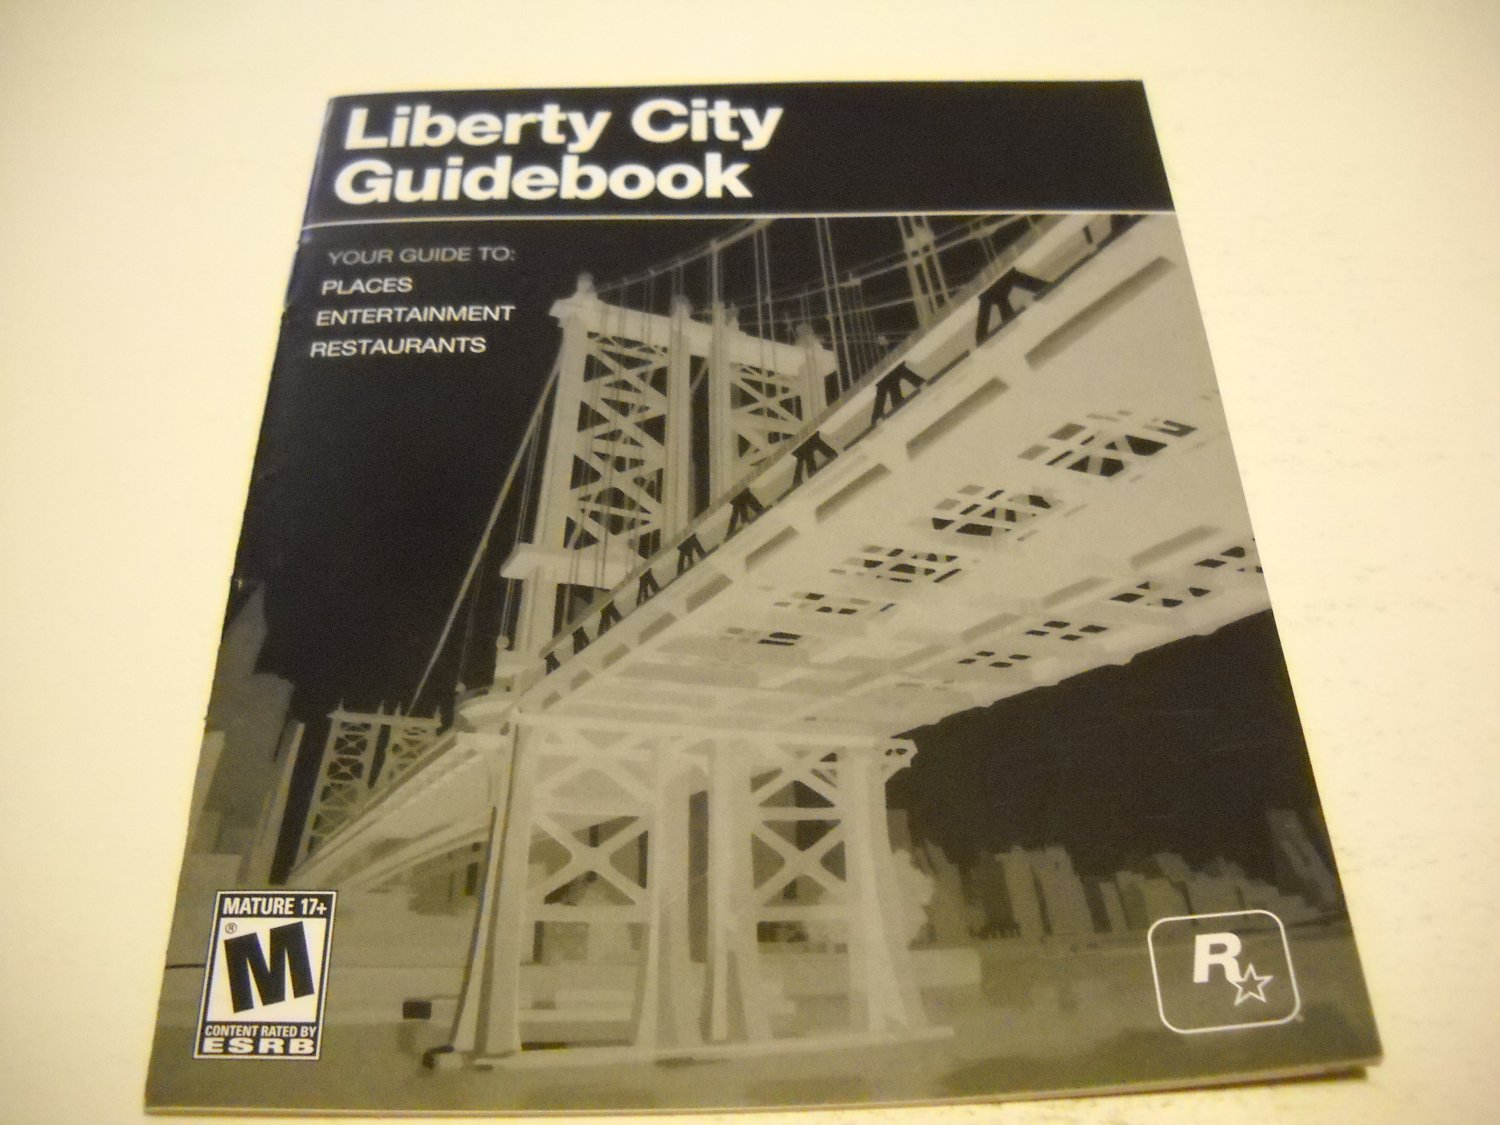 Manual ONLY ~  for Grand theft Auto Liberty City Guidebook , PS3